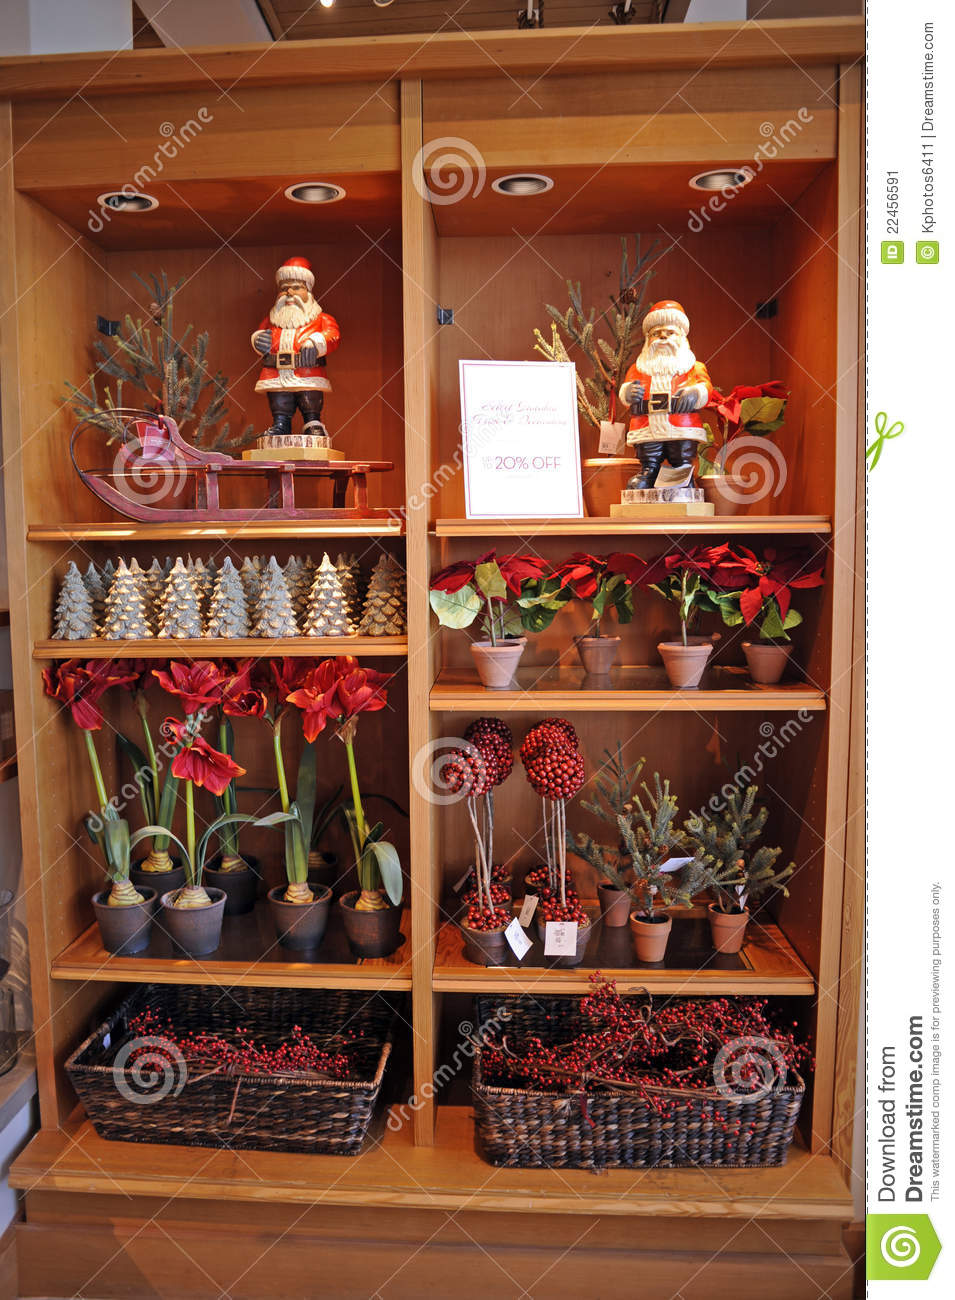 Display of Christmas home decorations including Santa Claus, sled